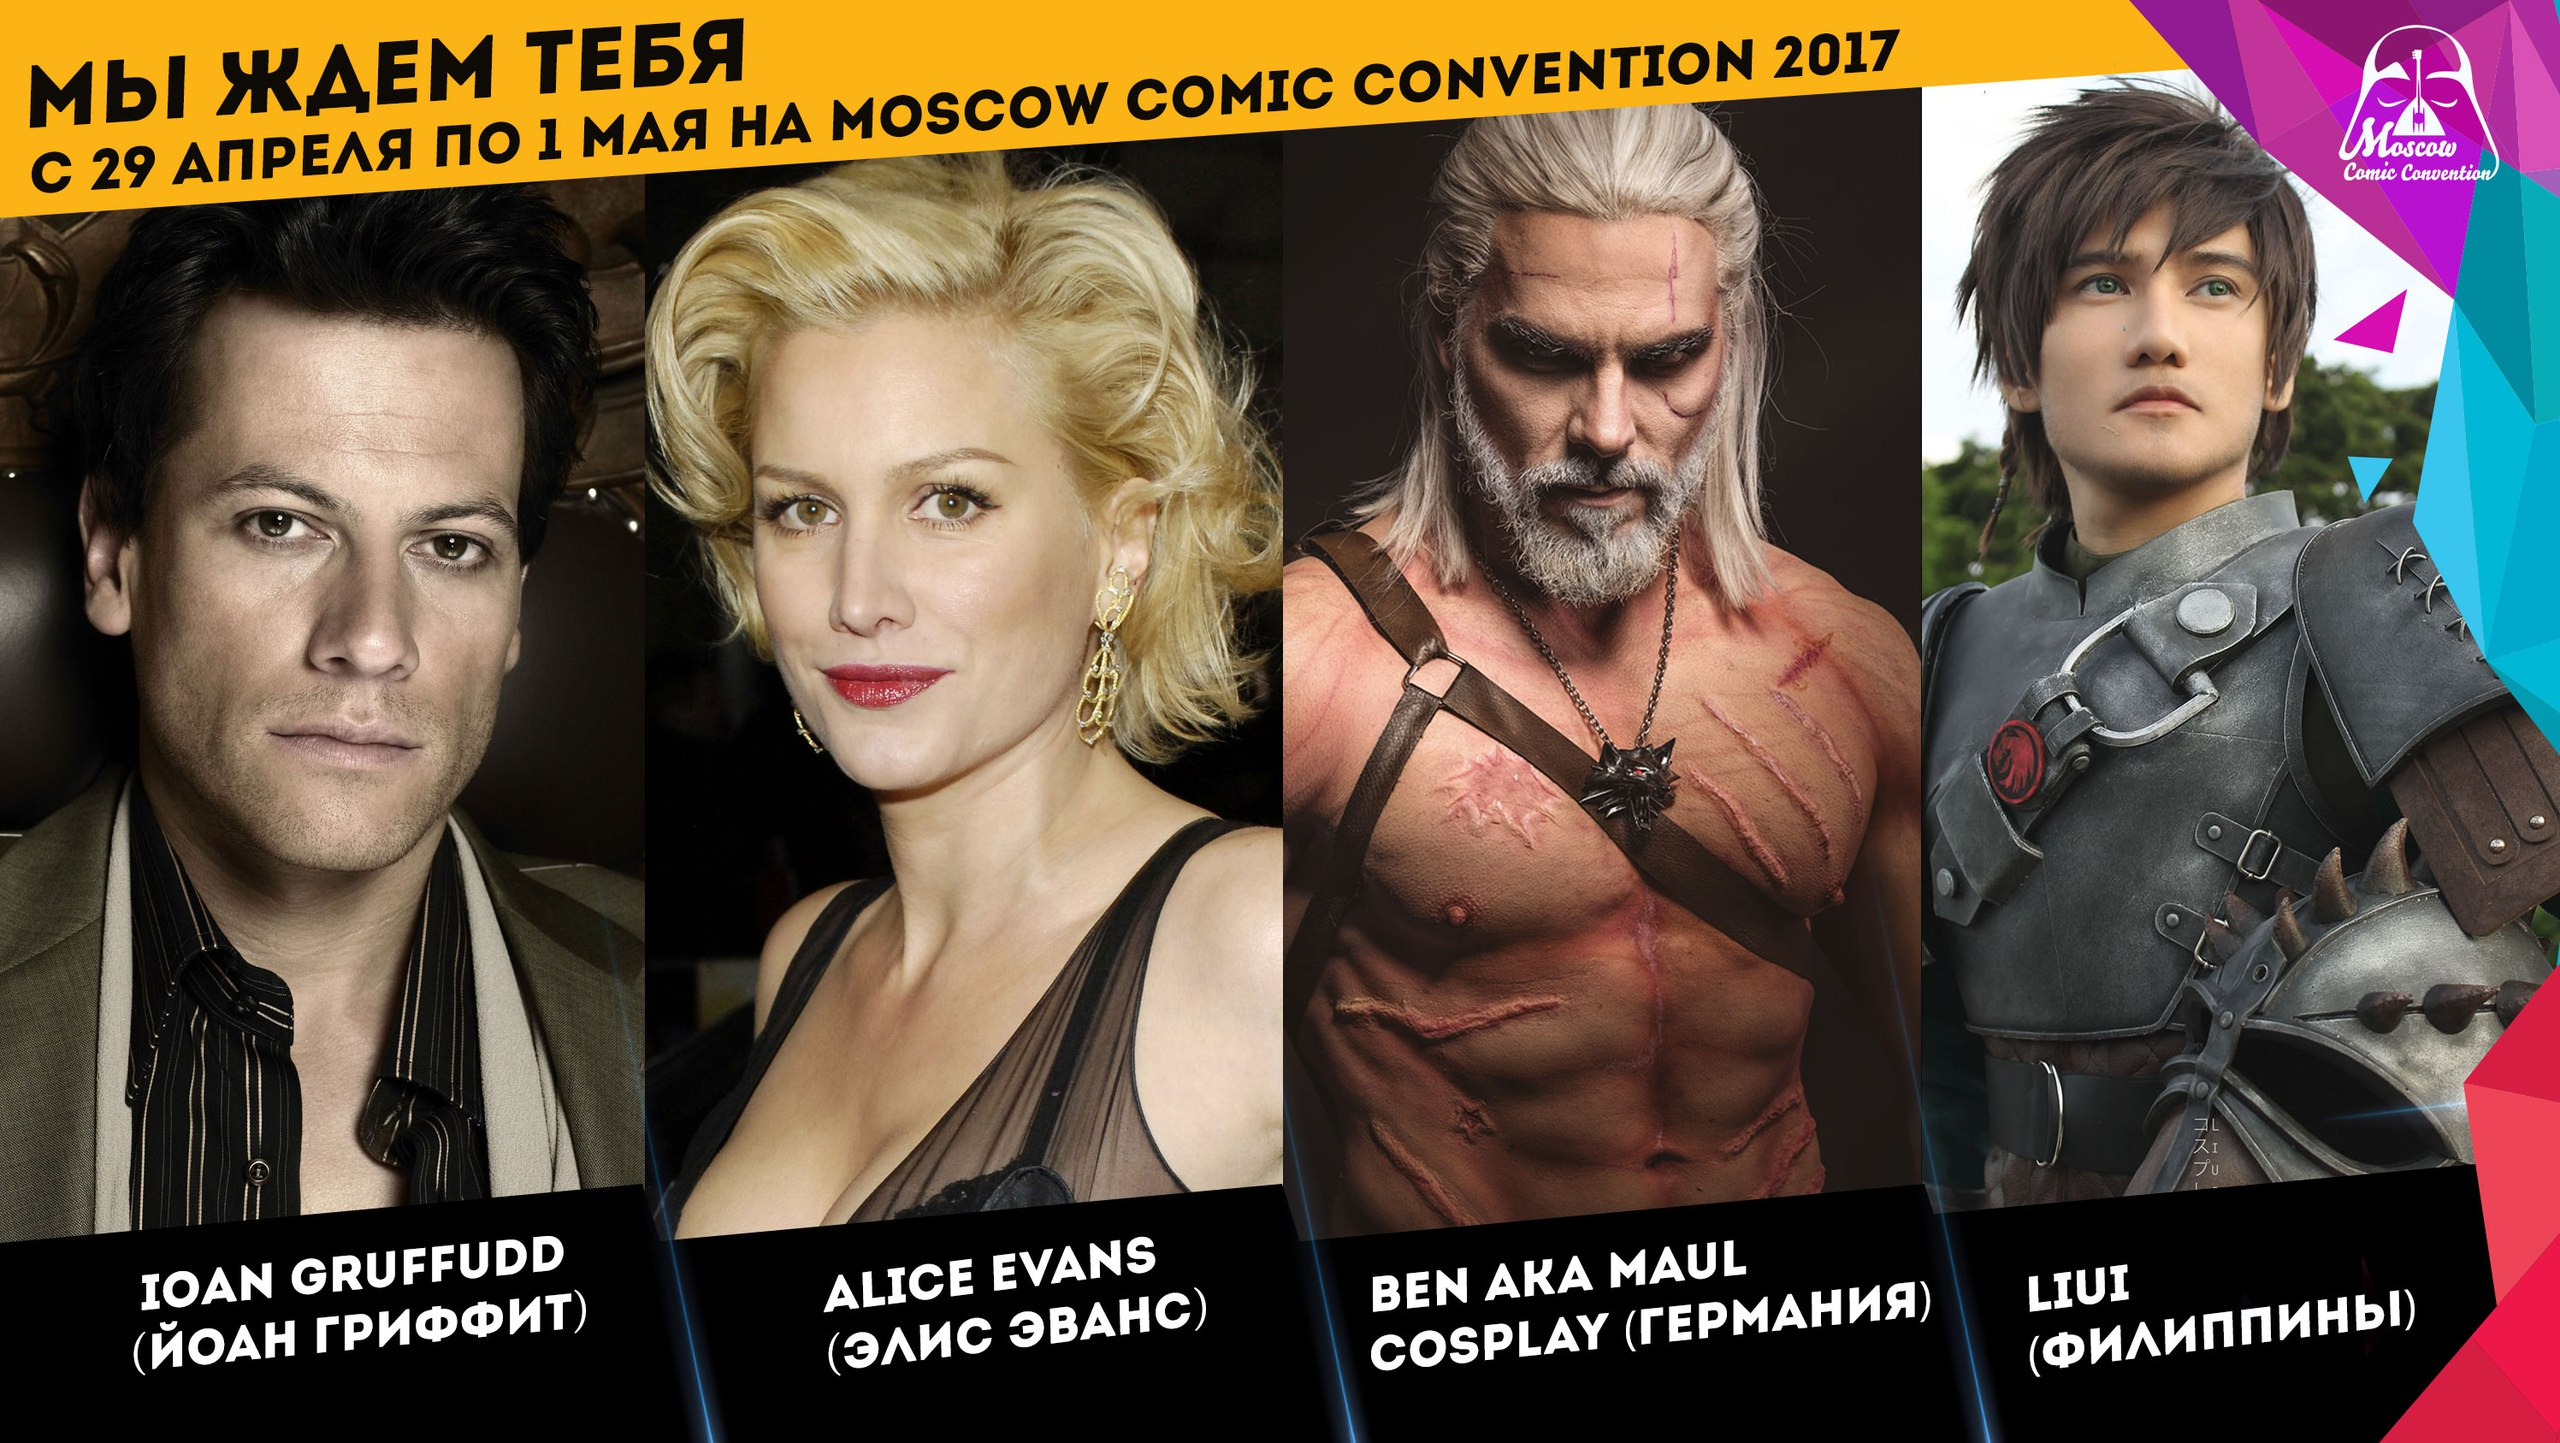 Кибер-рай «по-русски» — Moscow Comic Convention 2017 & Cyber World 2017